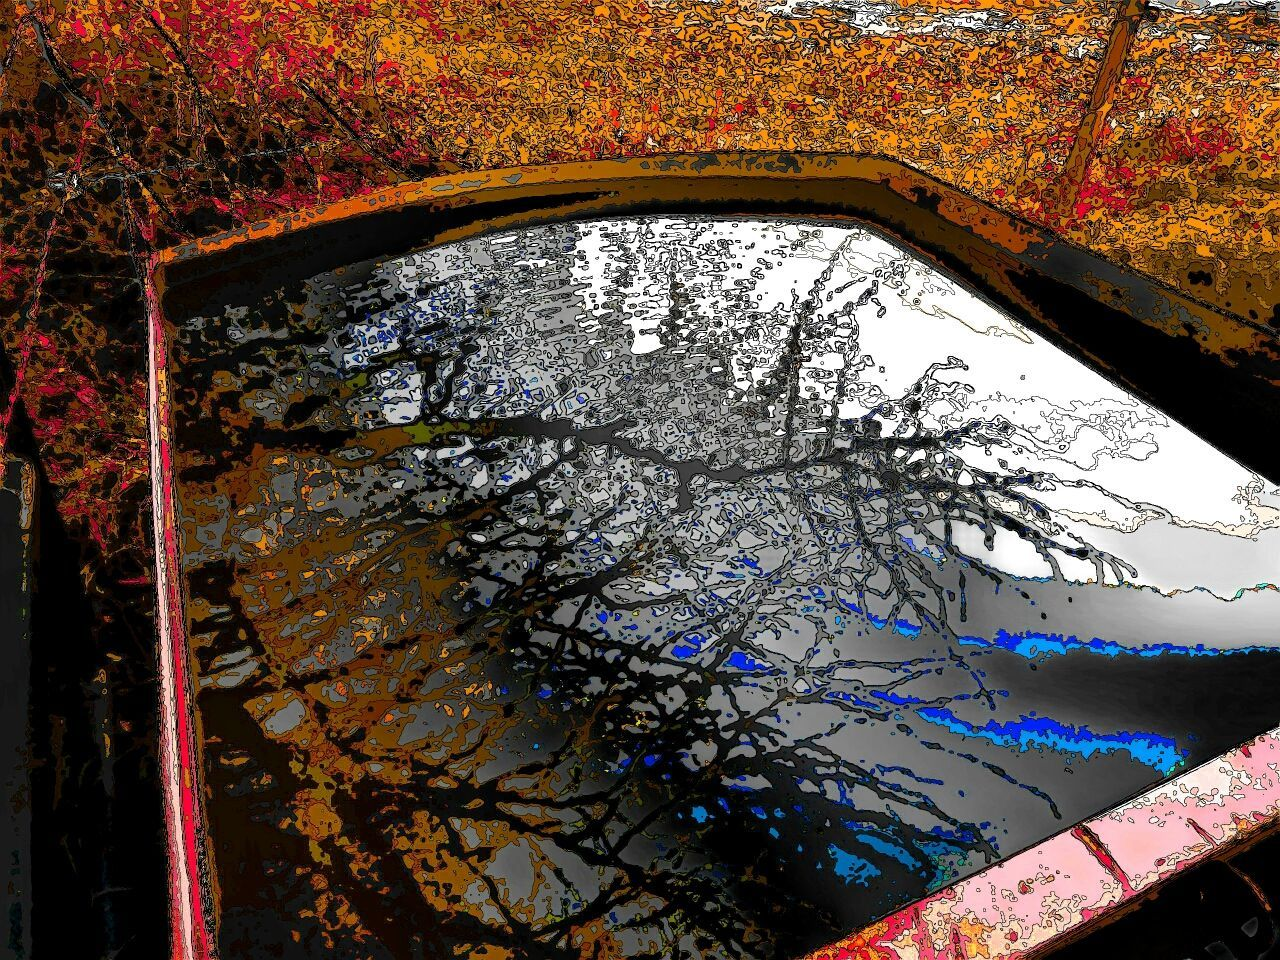 autumn, tree, leaf, no people, nature, growth, day, architecture, water, outdoors, close-up